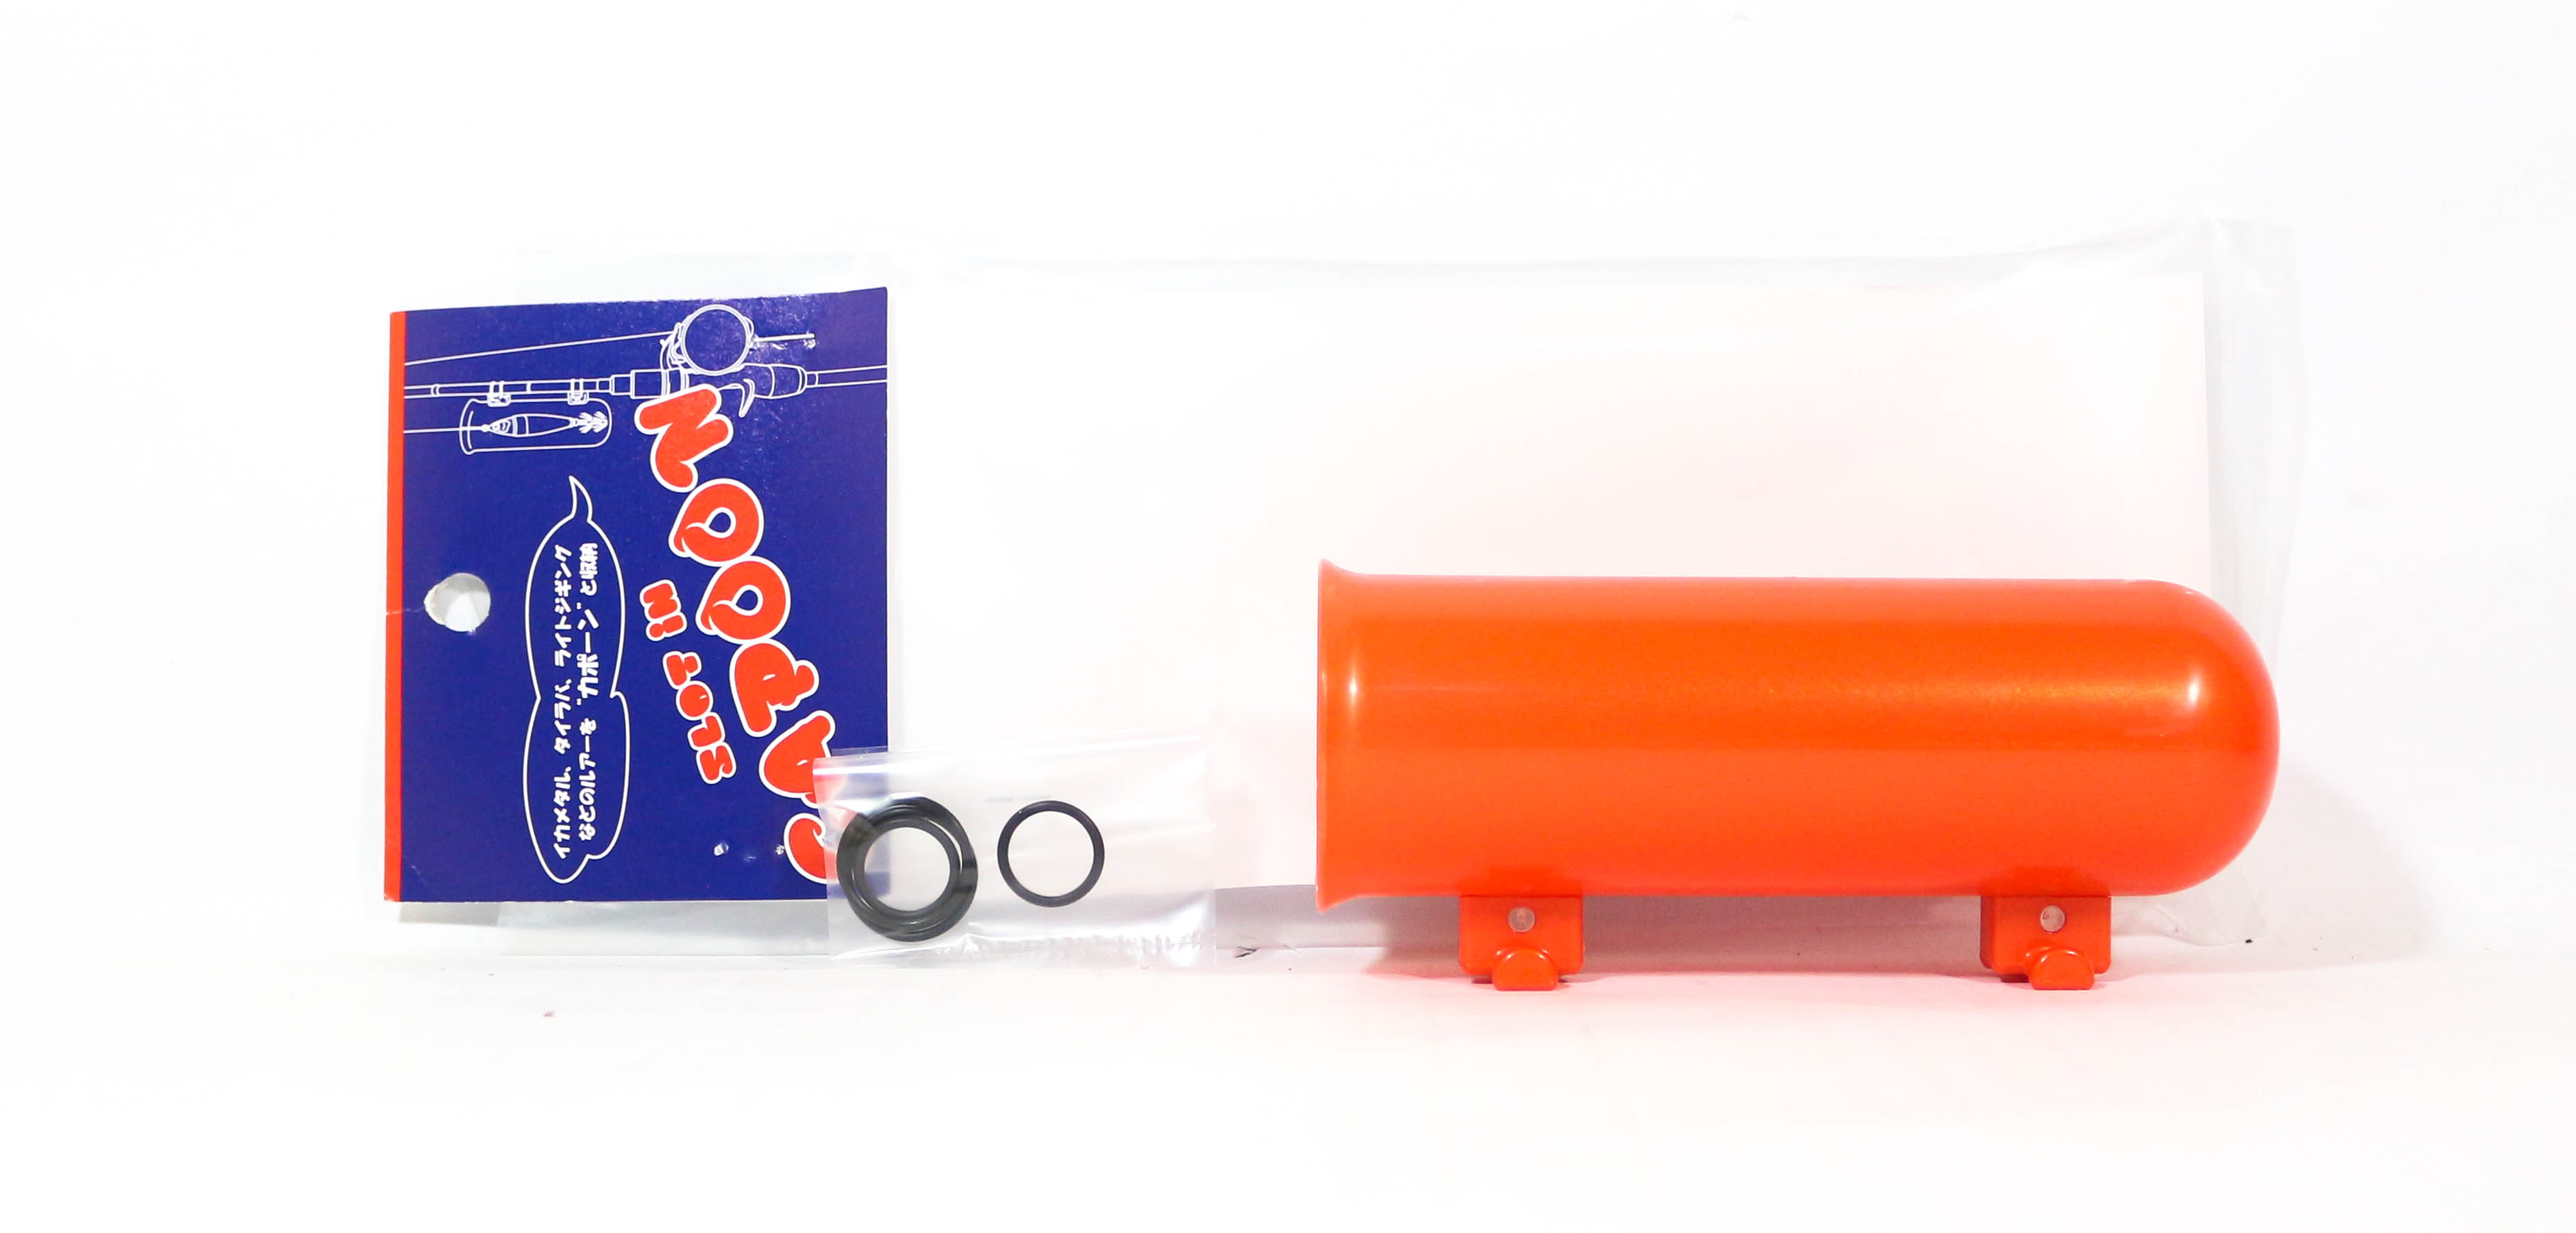 Capoon Lure Holder Fits on Rod Orange (1117)